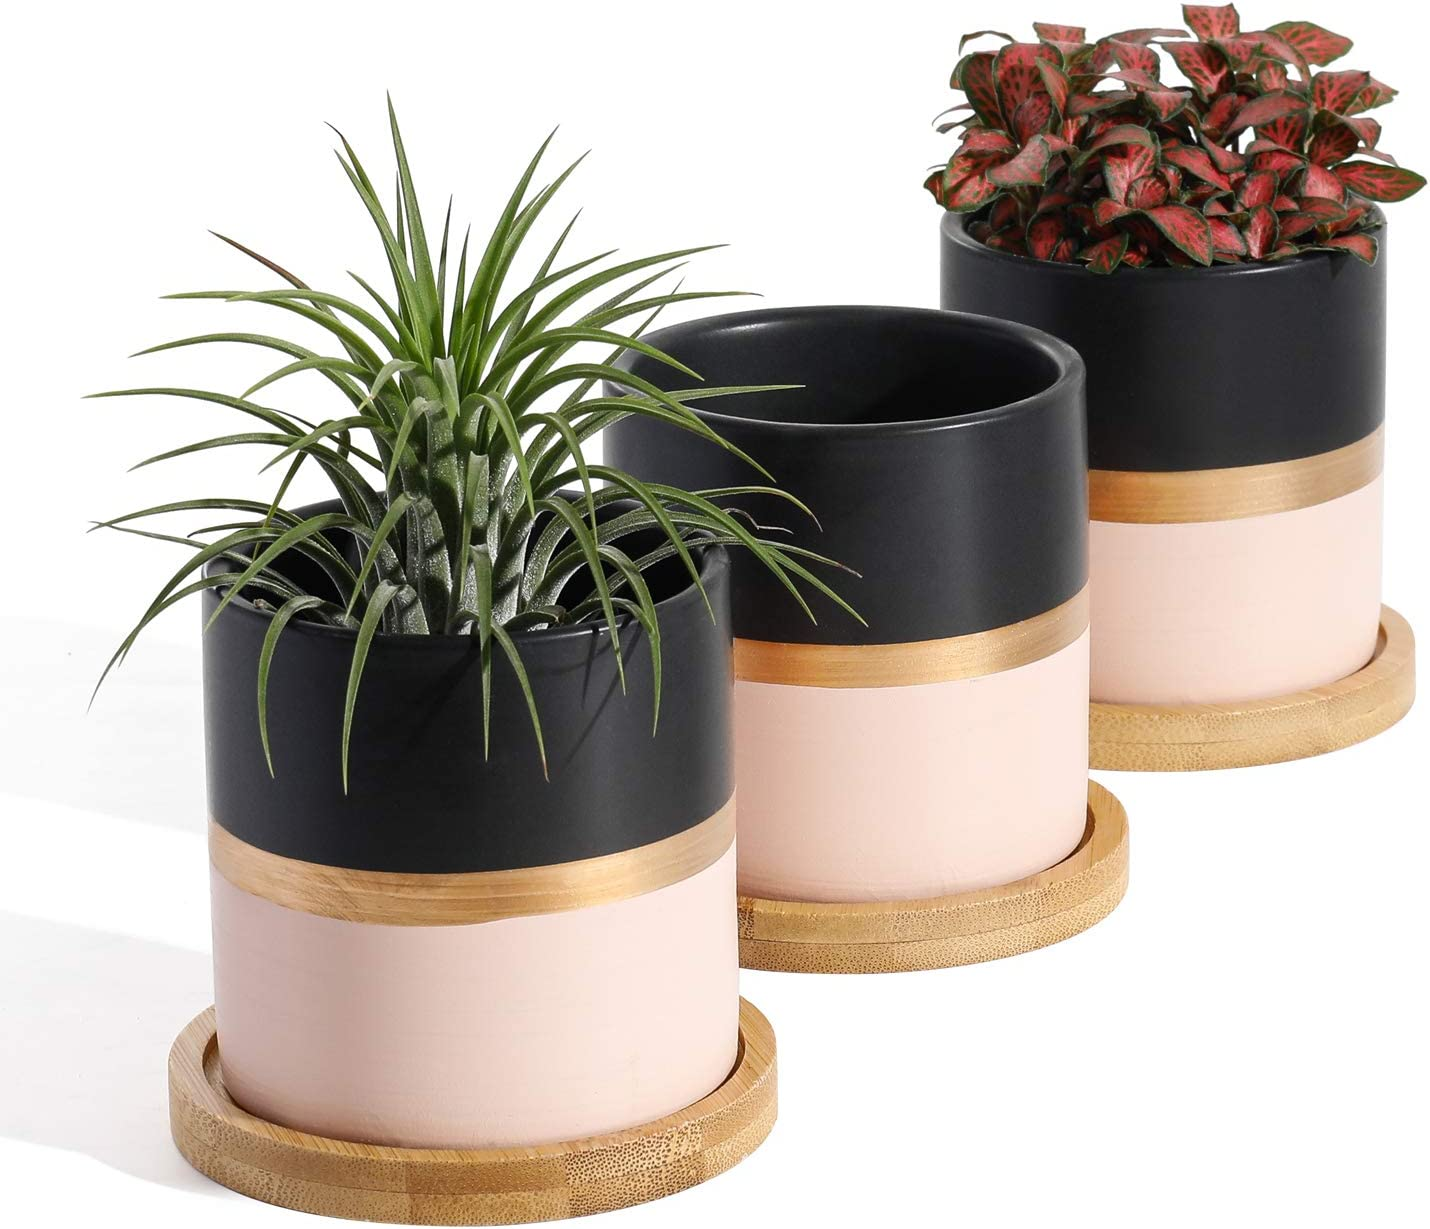 POTEY 055402 Succulent Pots Set - 3.1 Inches Ceramic Small Planters with Bamboo Saucer for Plants Succulent Cactus House Office Decor(Black Pink, 3 PCS, Plant NOT Included)